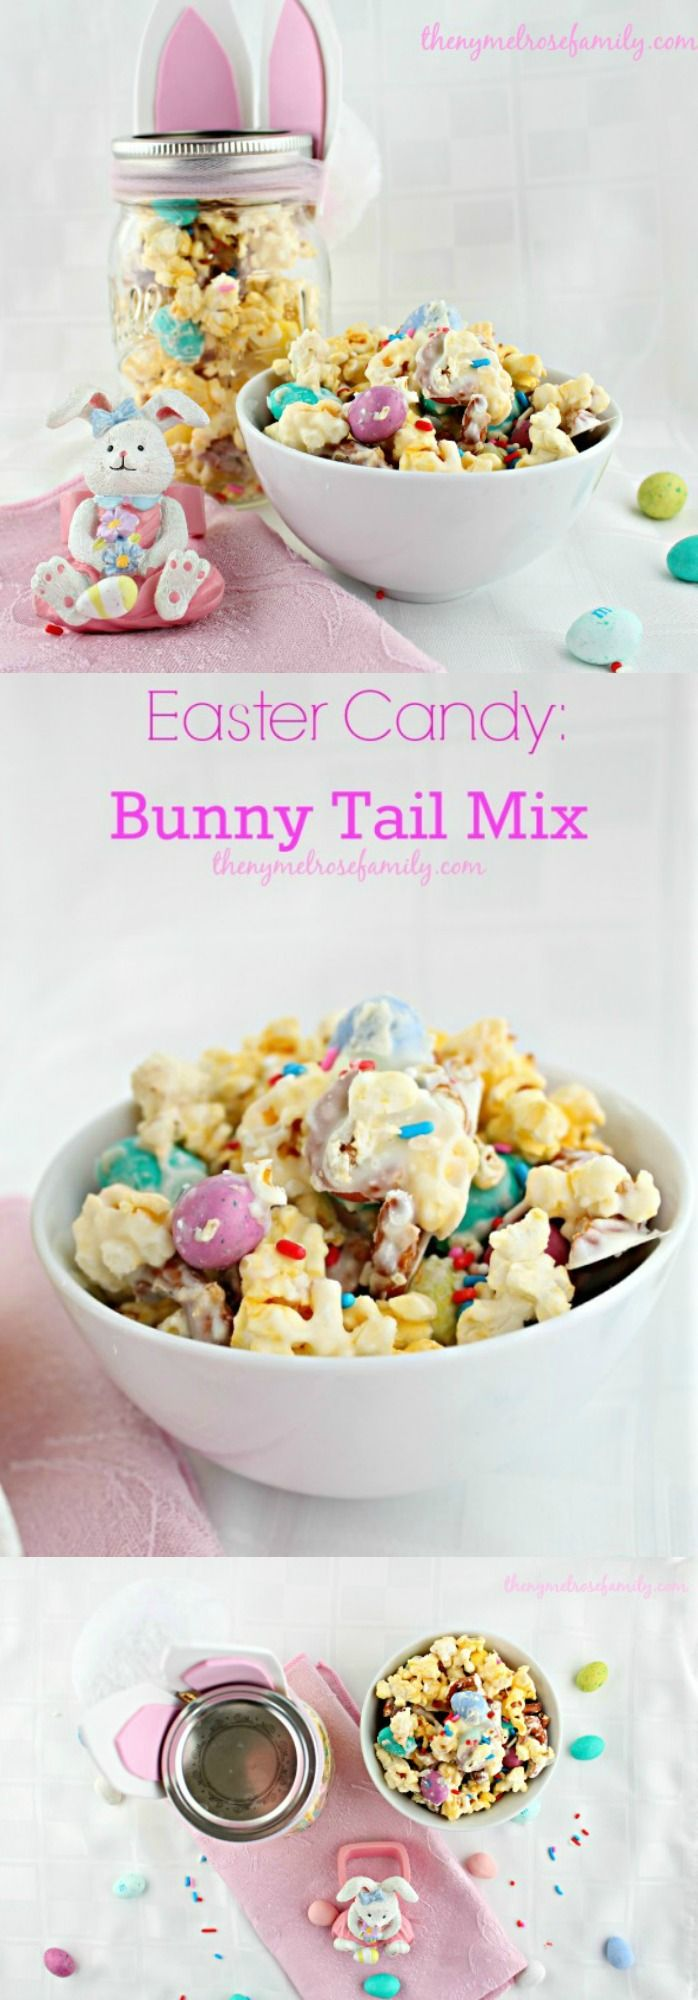 53 best easter popcorn images on pinterest easter recipes bunny tail mix is the perfect easter candy idea especially packaged in a mason jar negle Gallery